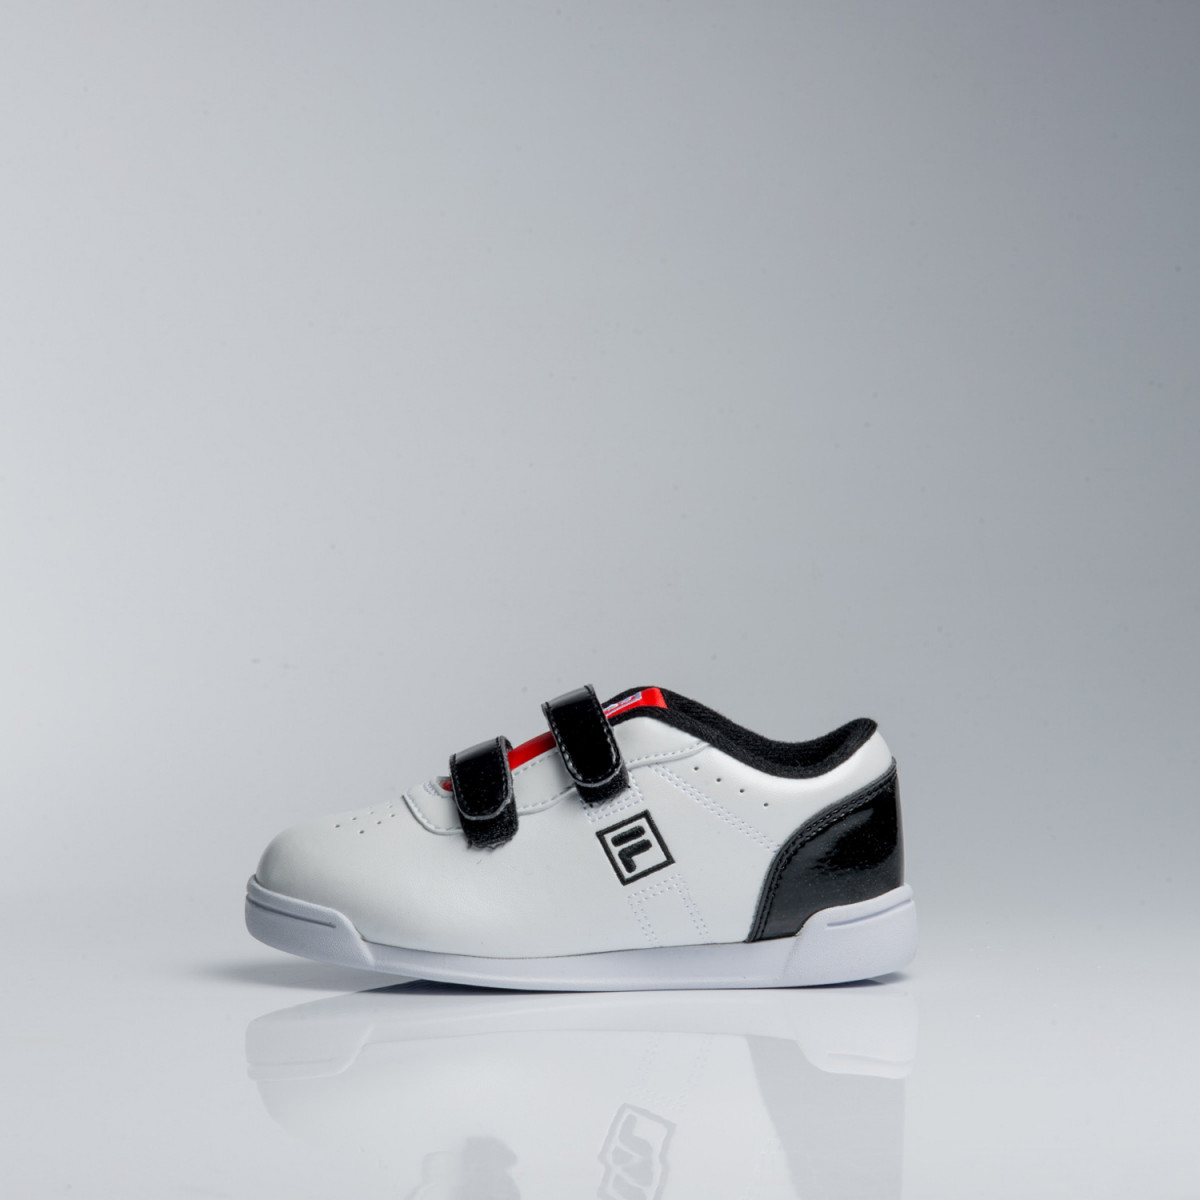 ZAPATILLAS FILA 16 LOW VELCRO